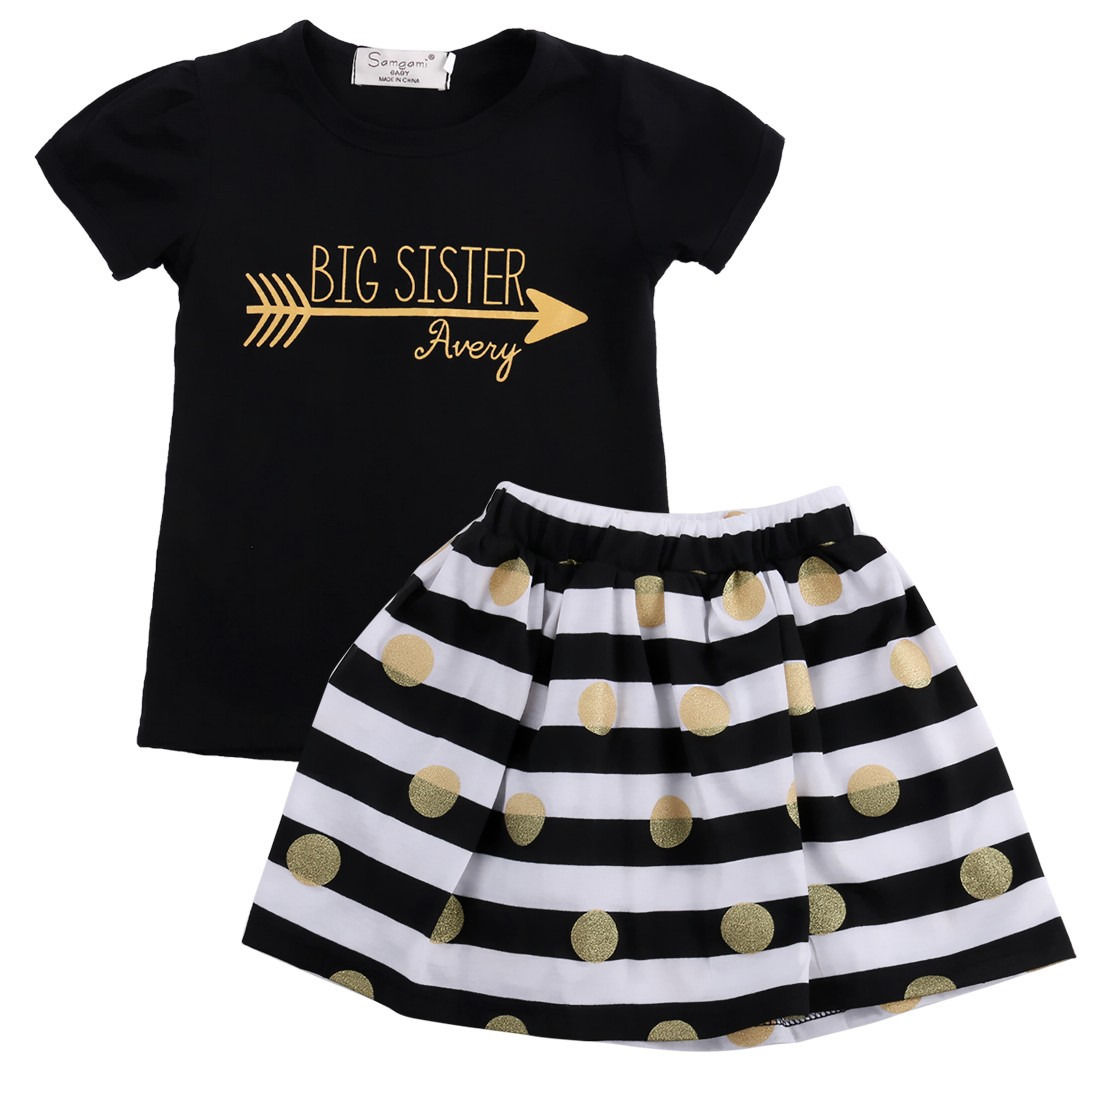 Newborn Kids Girls Clothes 2pcs sets Short Sleeve Tops T-Shirt+Striped Skirt Baby Girls Fashion cotton summer suits Outfits 2pcs children kids baby girls outfit sets chiffon t shirt tops shorts sleeveless summer outfits suit cute girls clothes sets